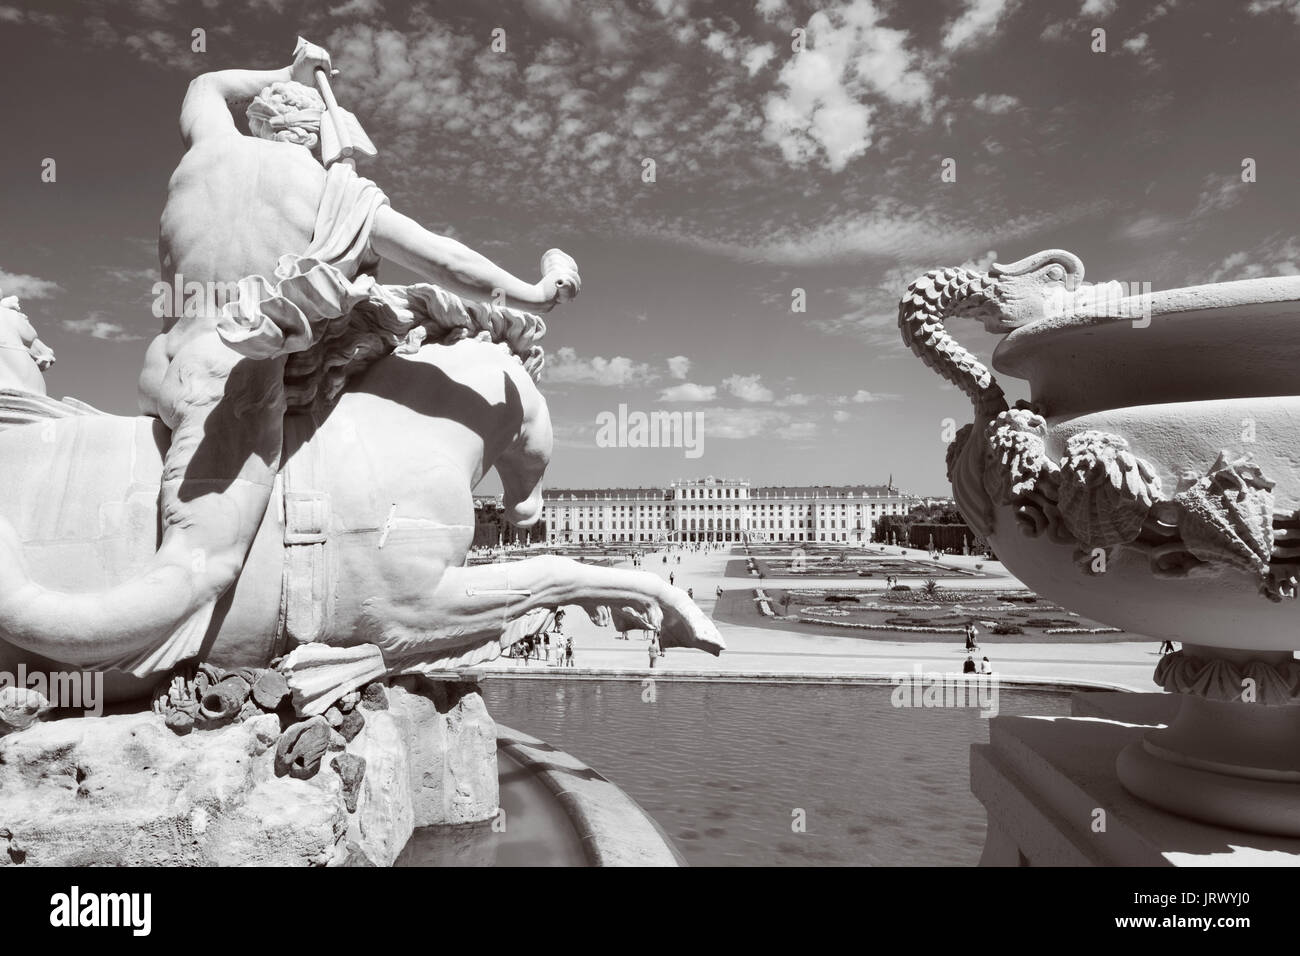 VIENNA, AUSTRIA - JULY 30, 2014: The Schonbrunn palace and gardens from Neptune fountain. Stock Photo